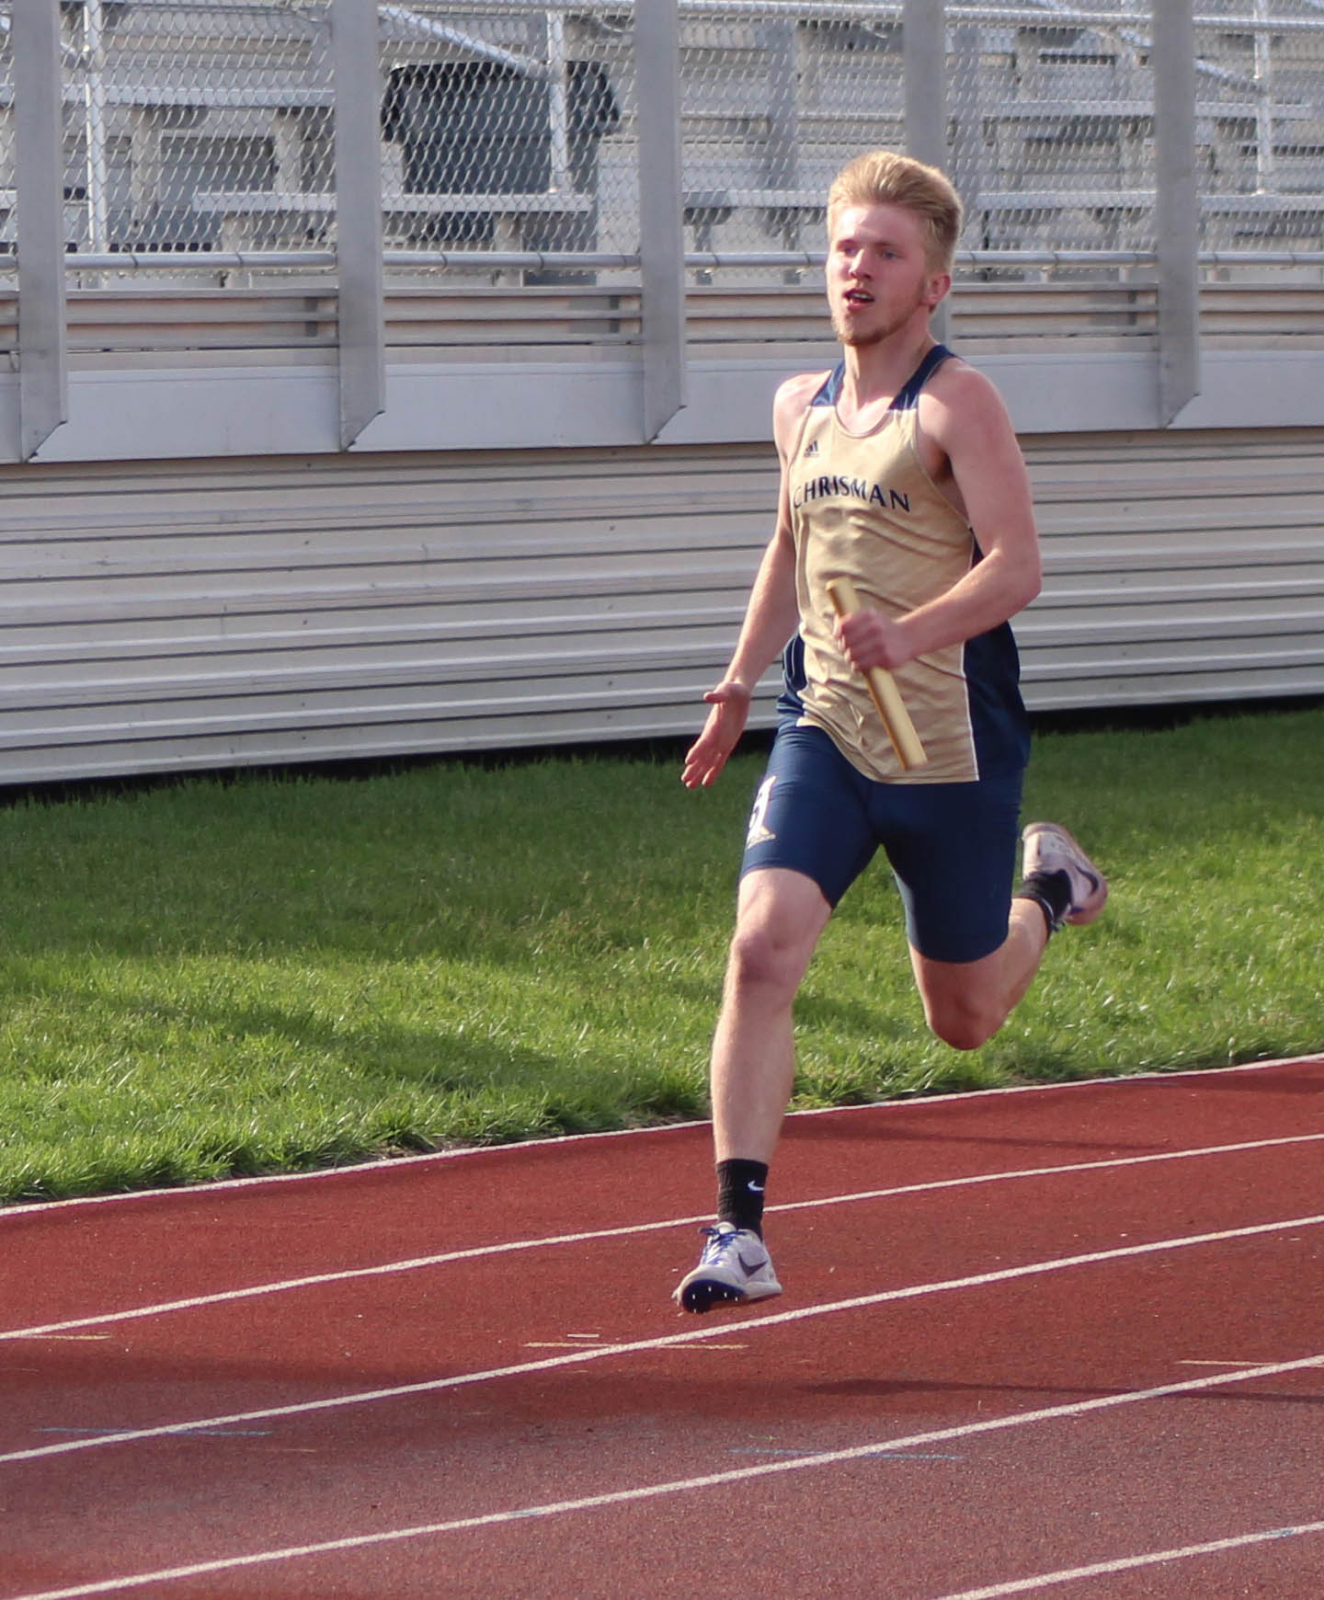 Chrisman Track and Field Has Strong Showing at Conference Meet